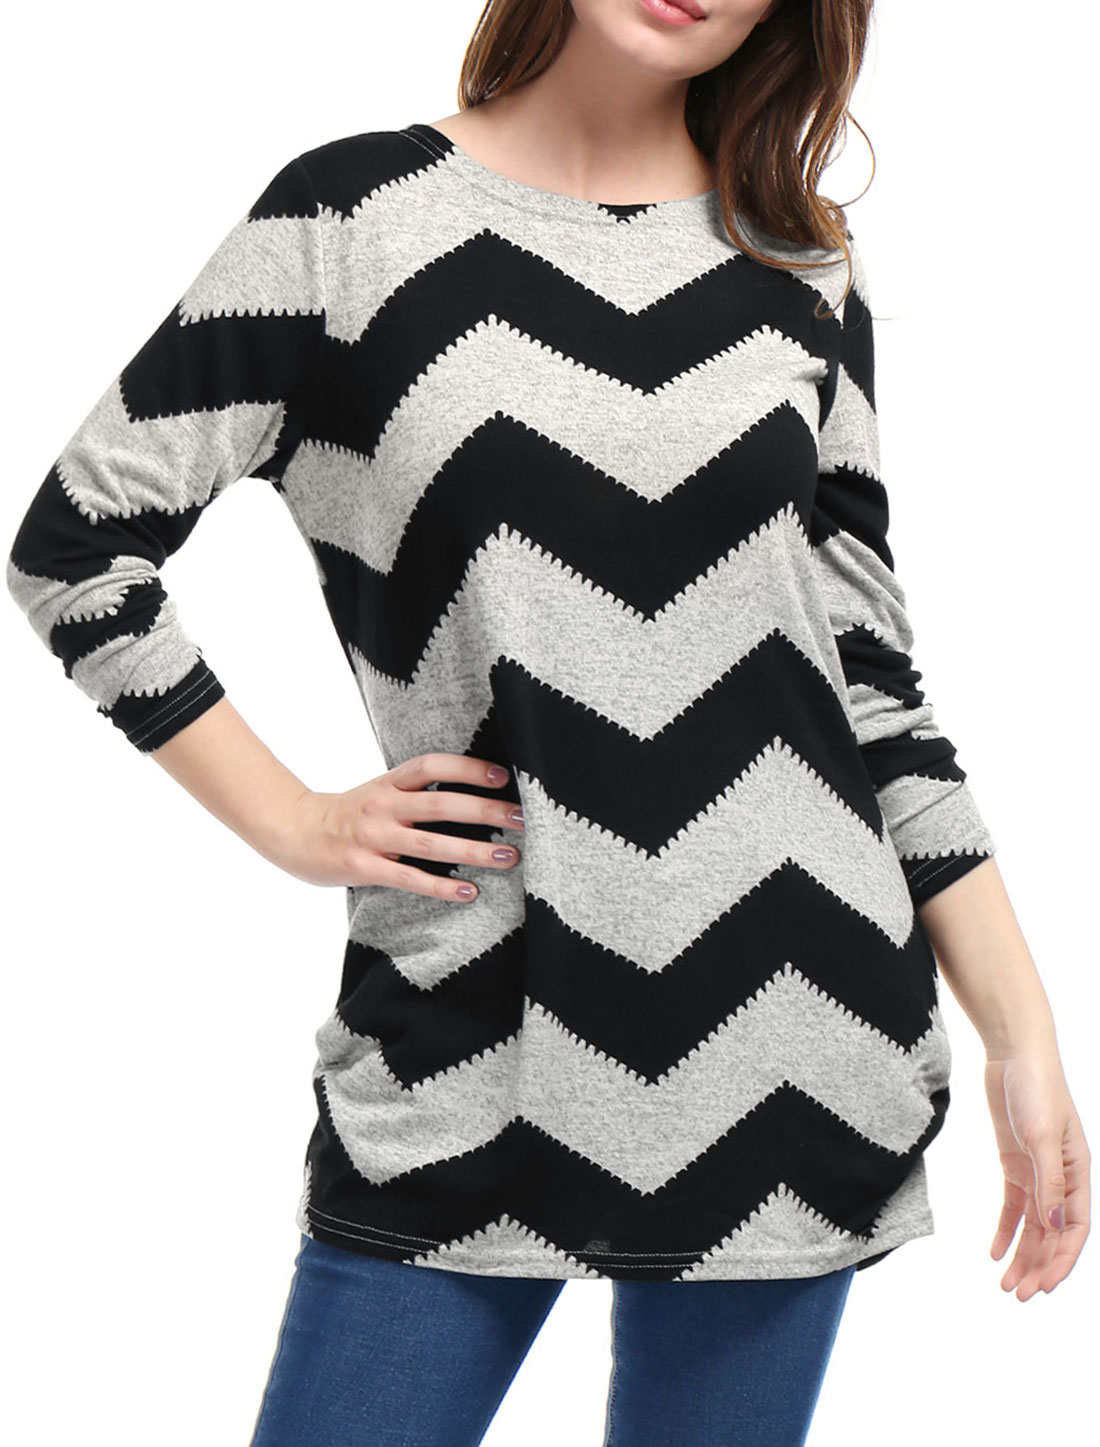 Woman Zig-Zag Pattern Knitted Loose Tunic Shirt Black Gray M